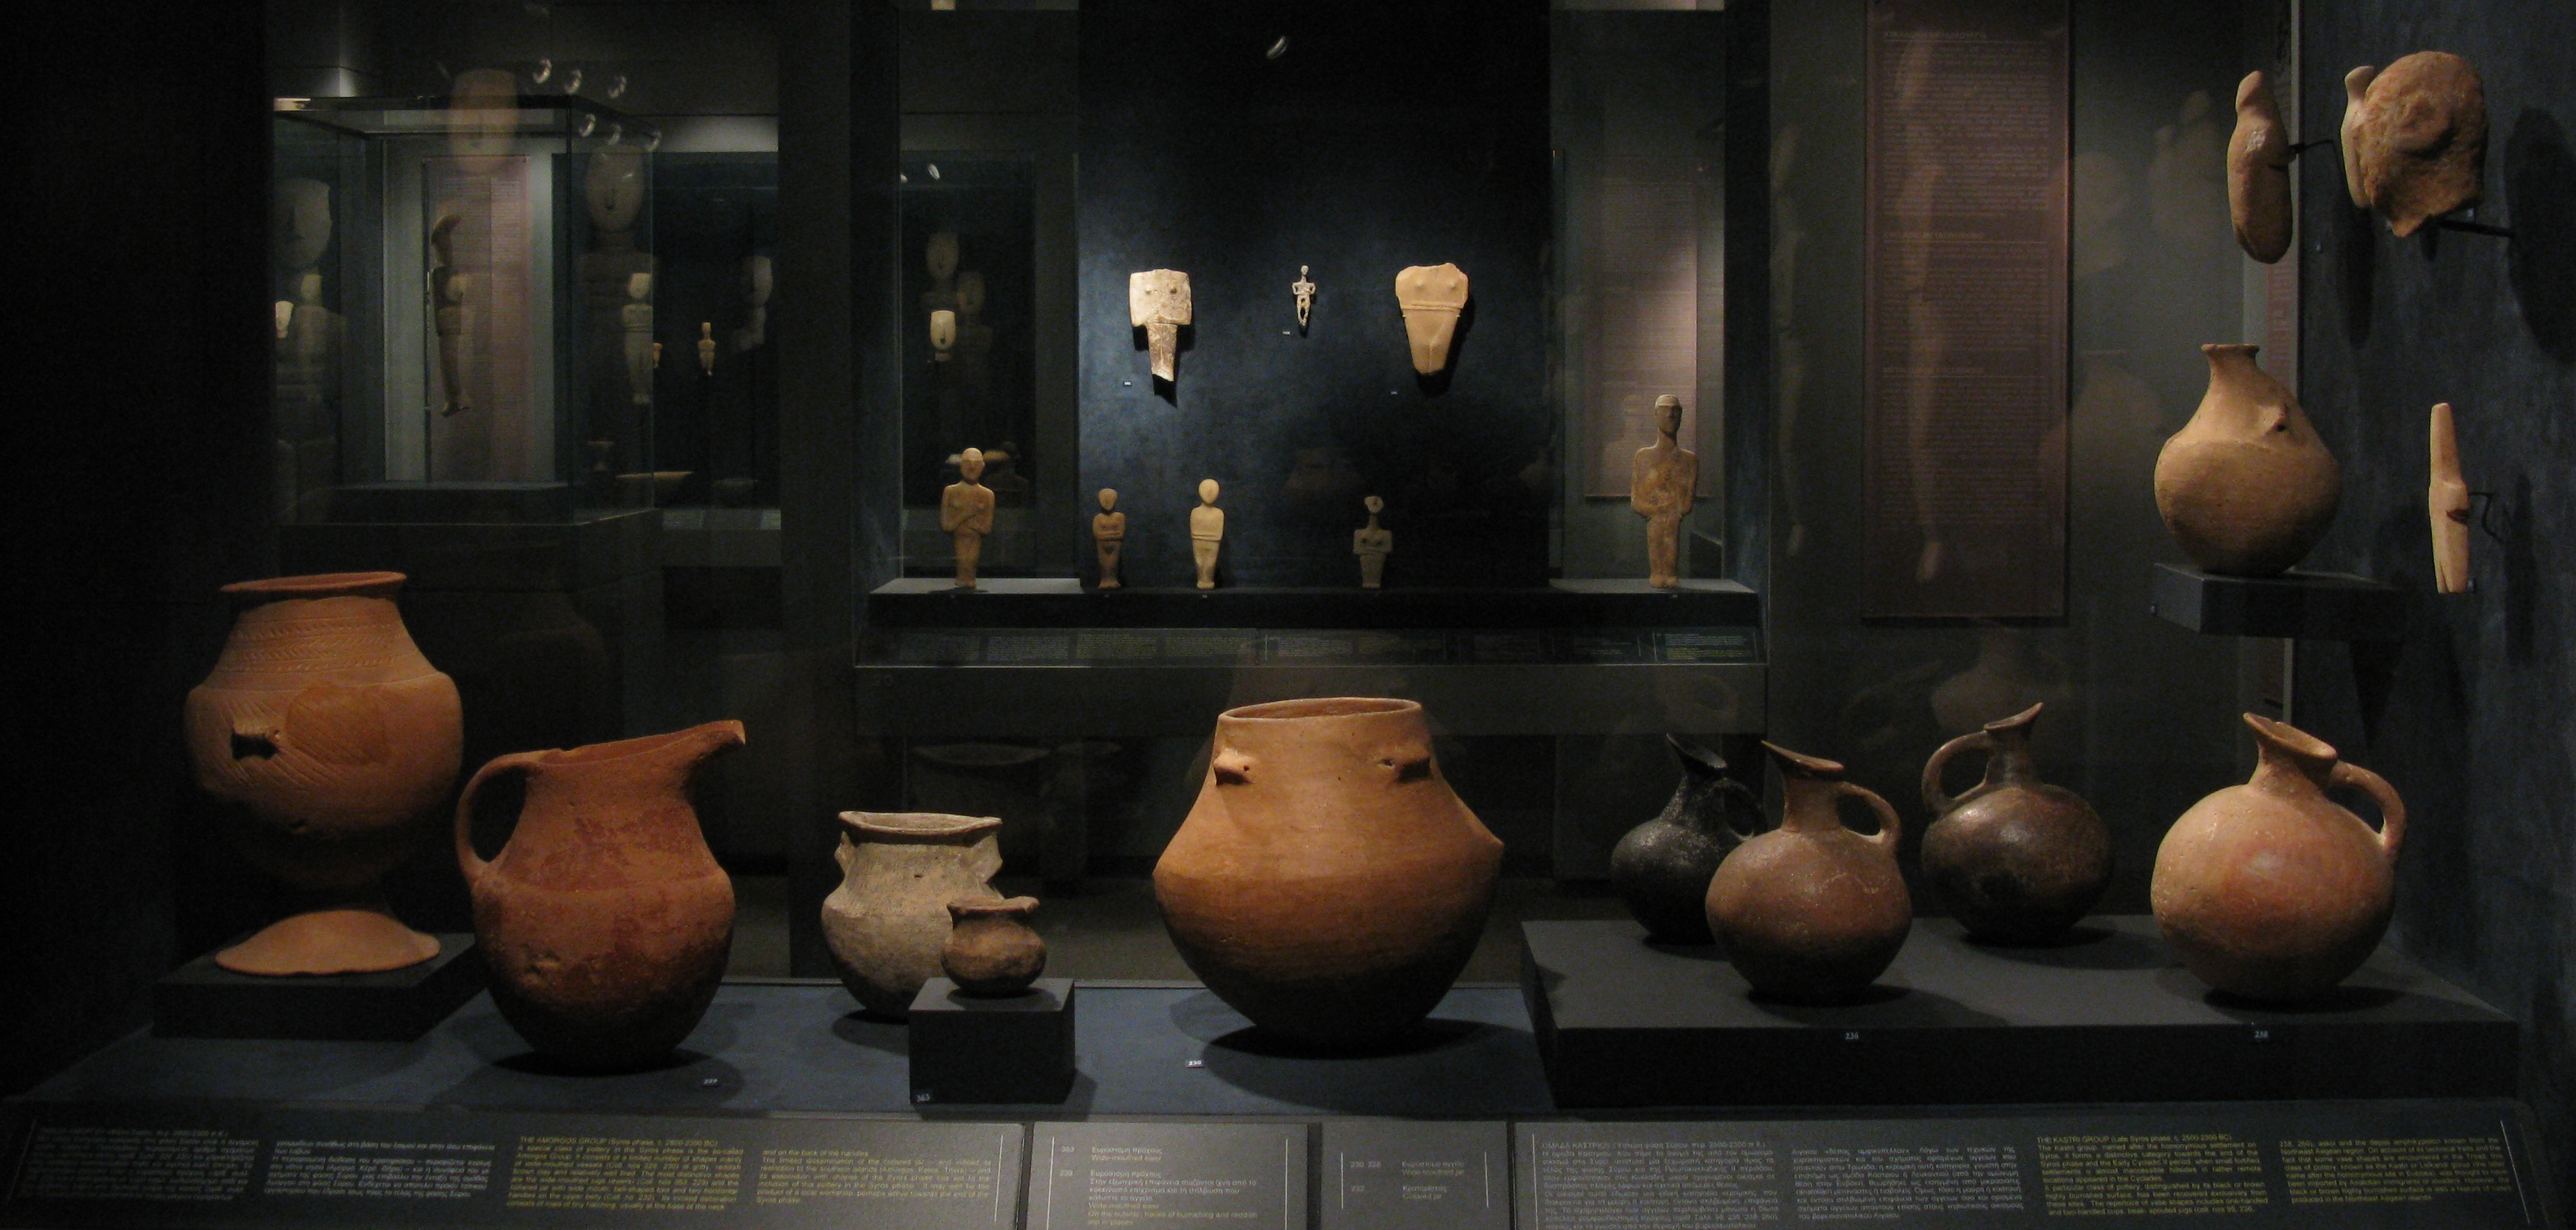 File:Cycladic Art Museum, Athens, Greece (1).jpg ...